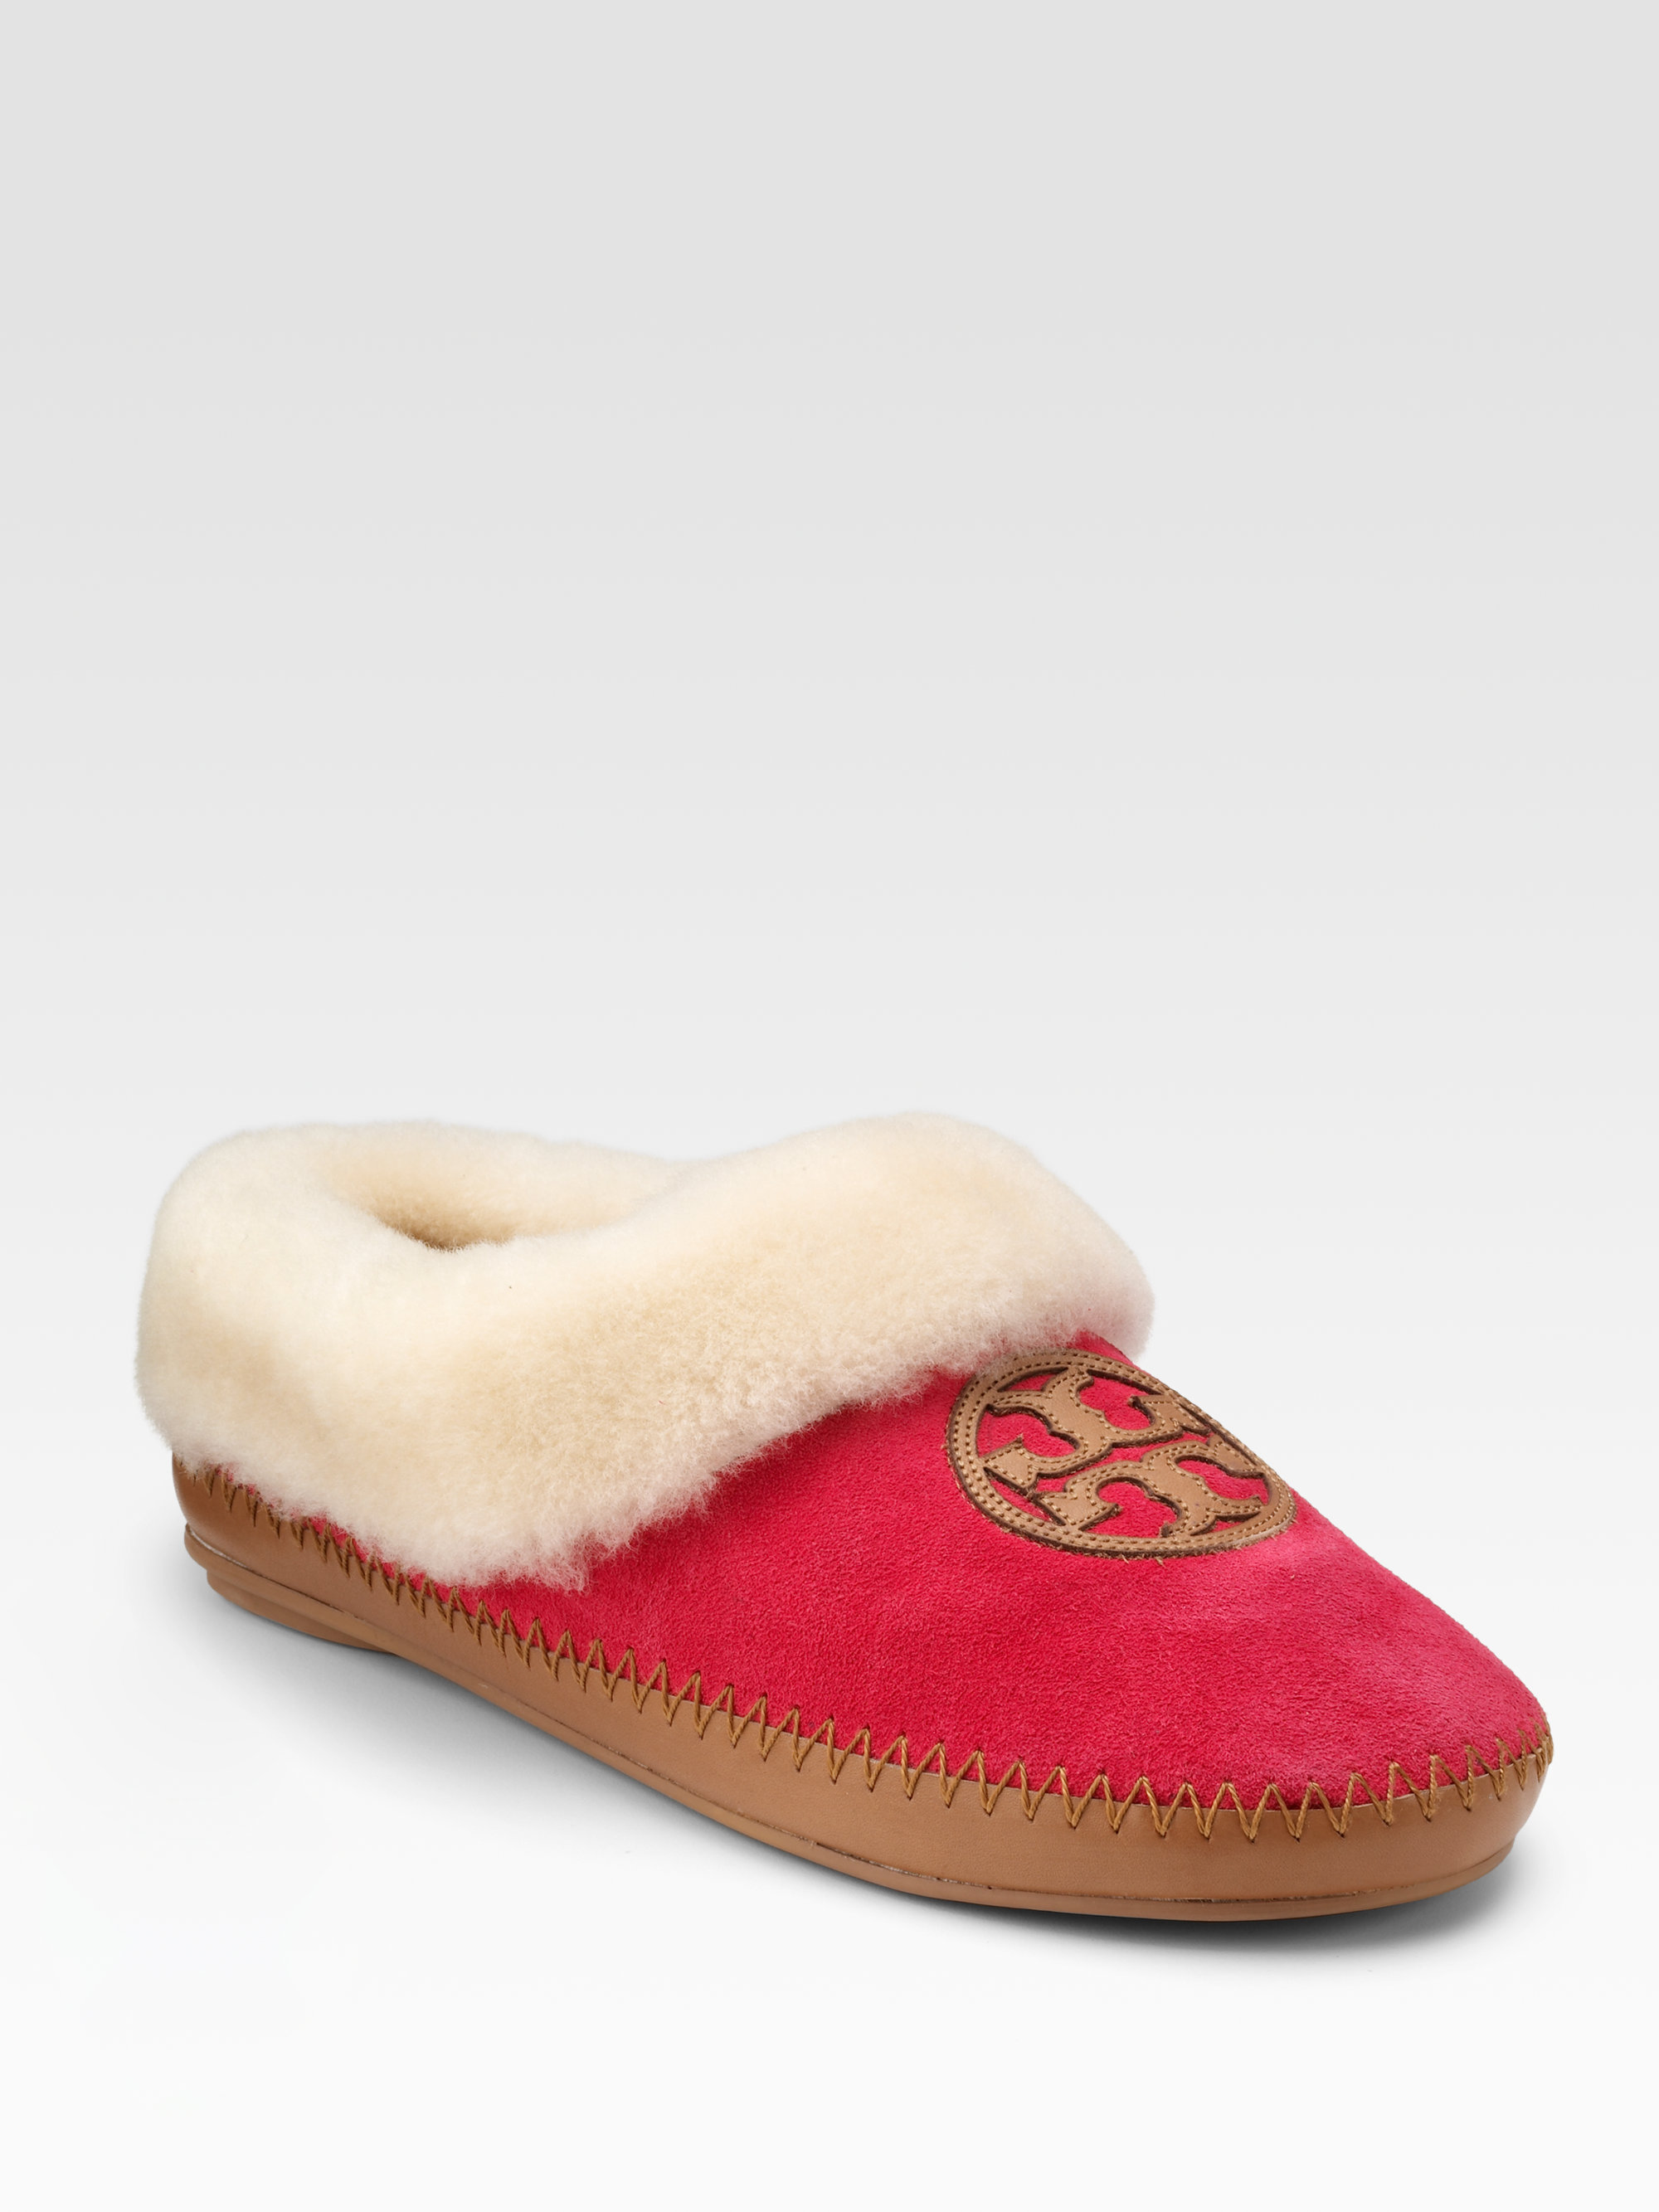 d814b800e1f Lyst - Tory Burch Coley Suede Shearlinglined Slippers in Red